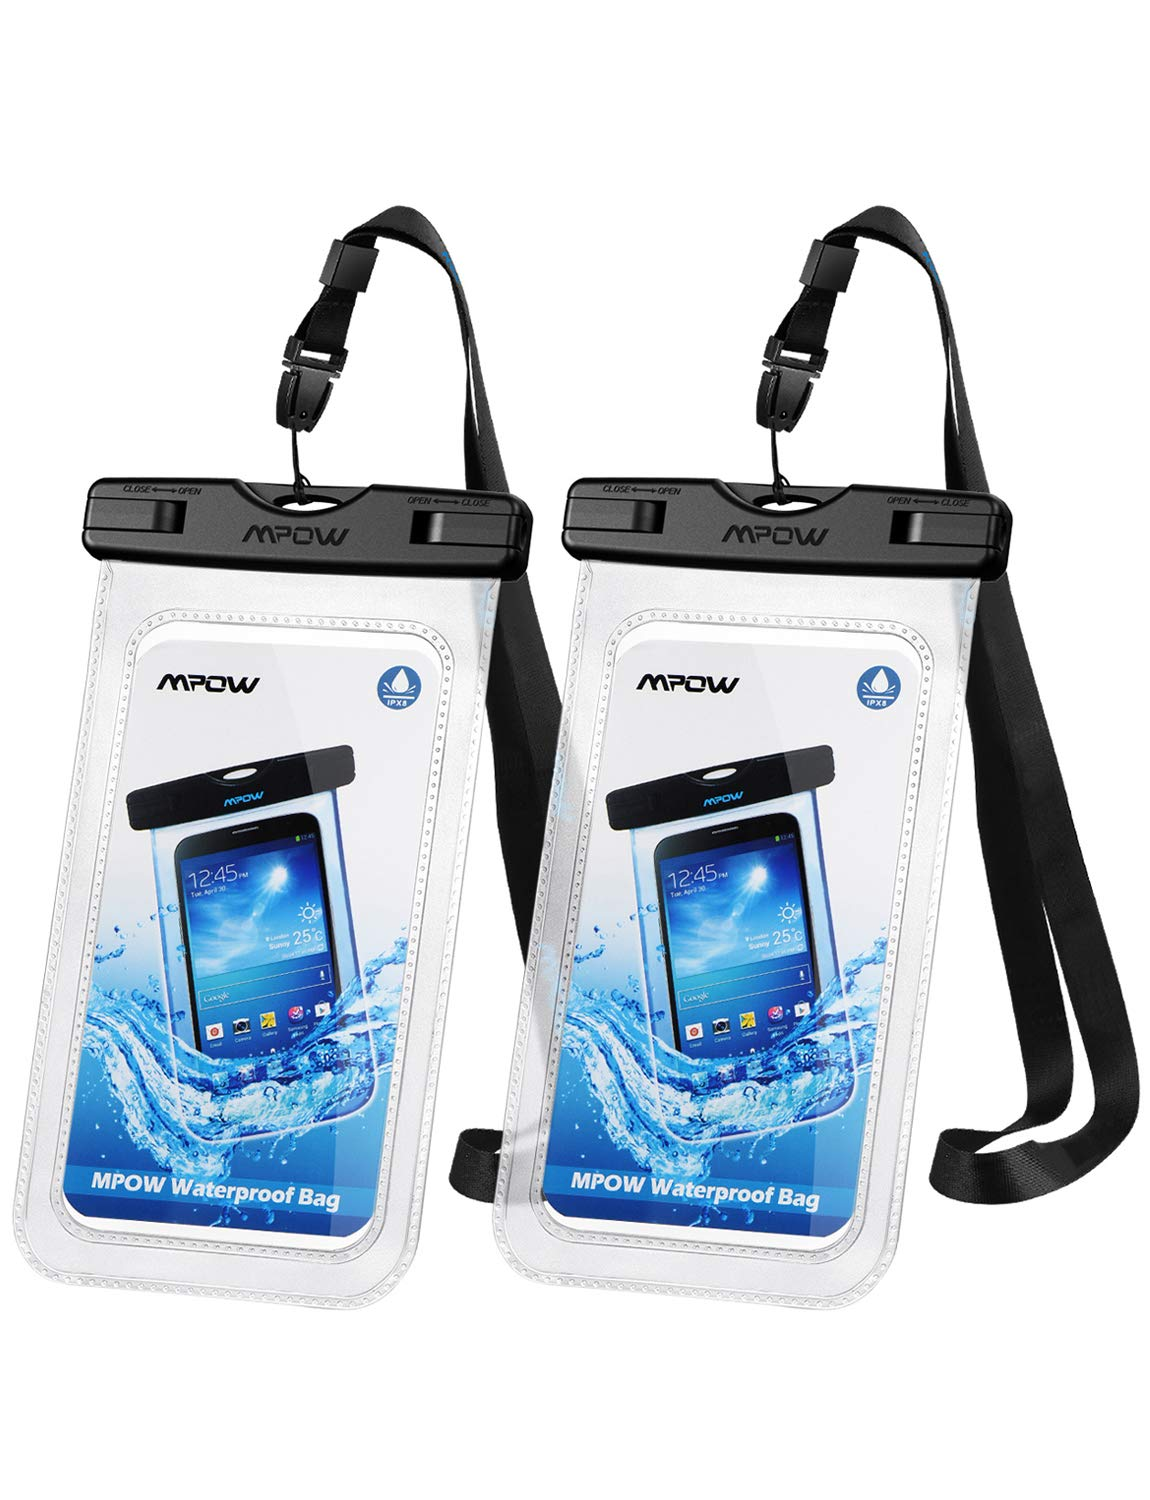 """Mpow 097 Universal Waterproof Case, IPX8 Waterproof Phone Pouch Dry Bag Compatible for iPhone Xs Max/XR/X/8/8P/7/7P Galaxy up to 6.5"""", Protective Pouch for Pools Beach Kayaking Travel or Bath (2-Pack) - 71uhxxFOSuL - Mpow 097 Universal Waterproof Case, IPX8 Waterproof Phone Pouch Dry Bag Compatible for iPhone Xs Max/XR/X/8/8P/7/7P Galaxy up to 6.5″, Protective Pouch for Pools Beach Kayaking Travel or Bath (2-Pack)"""